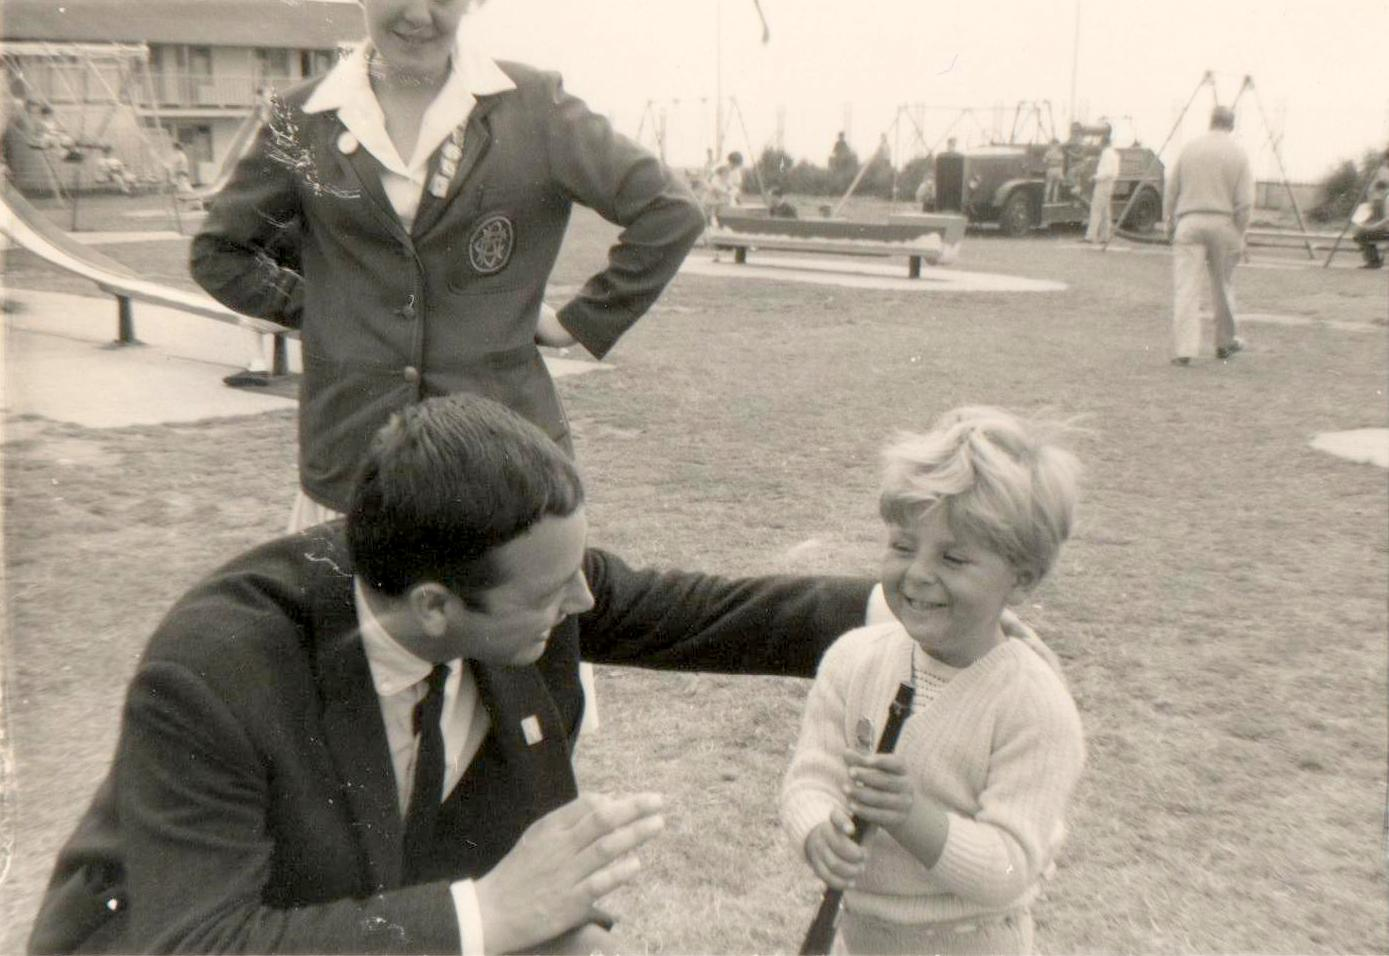 BUTLINS CLACTON 1962 NICKY